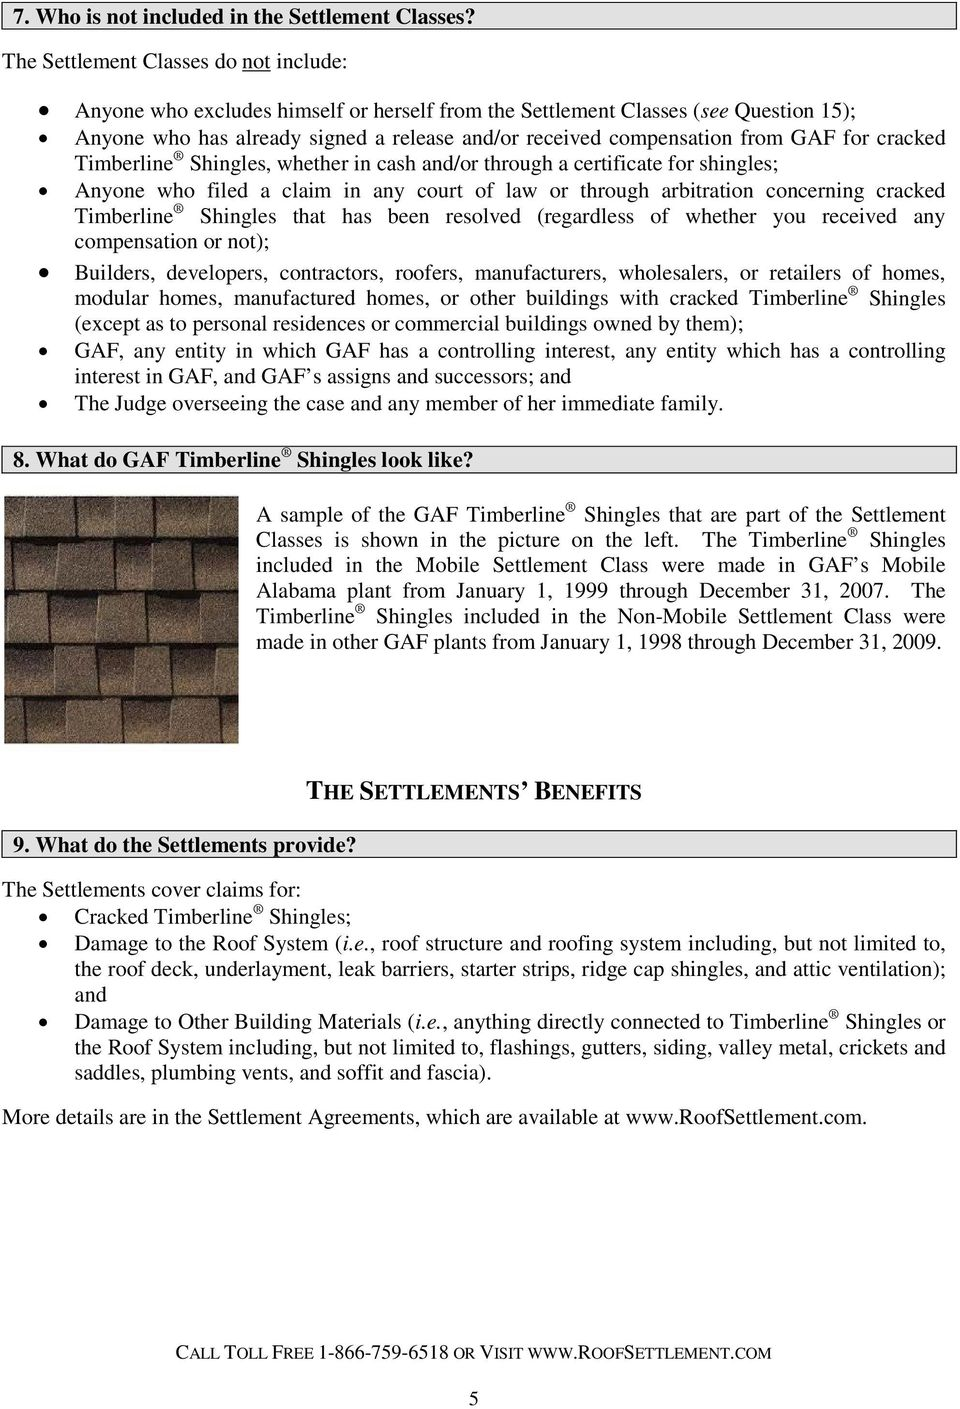 If You Own Property With Gaf Timberline Roofing Shingles